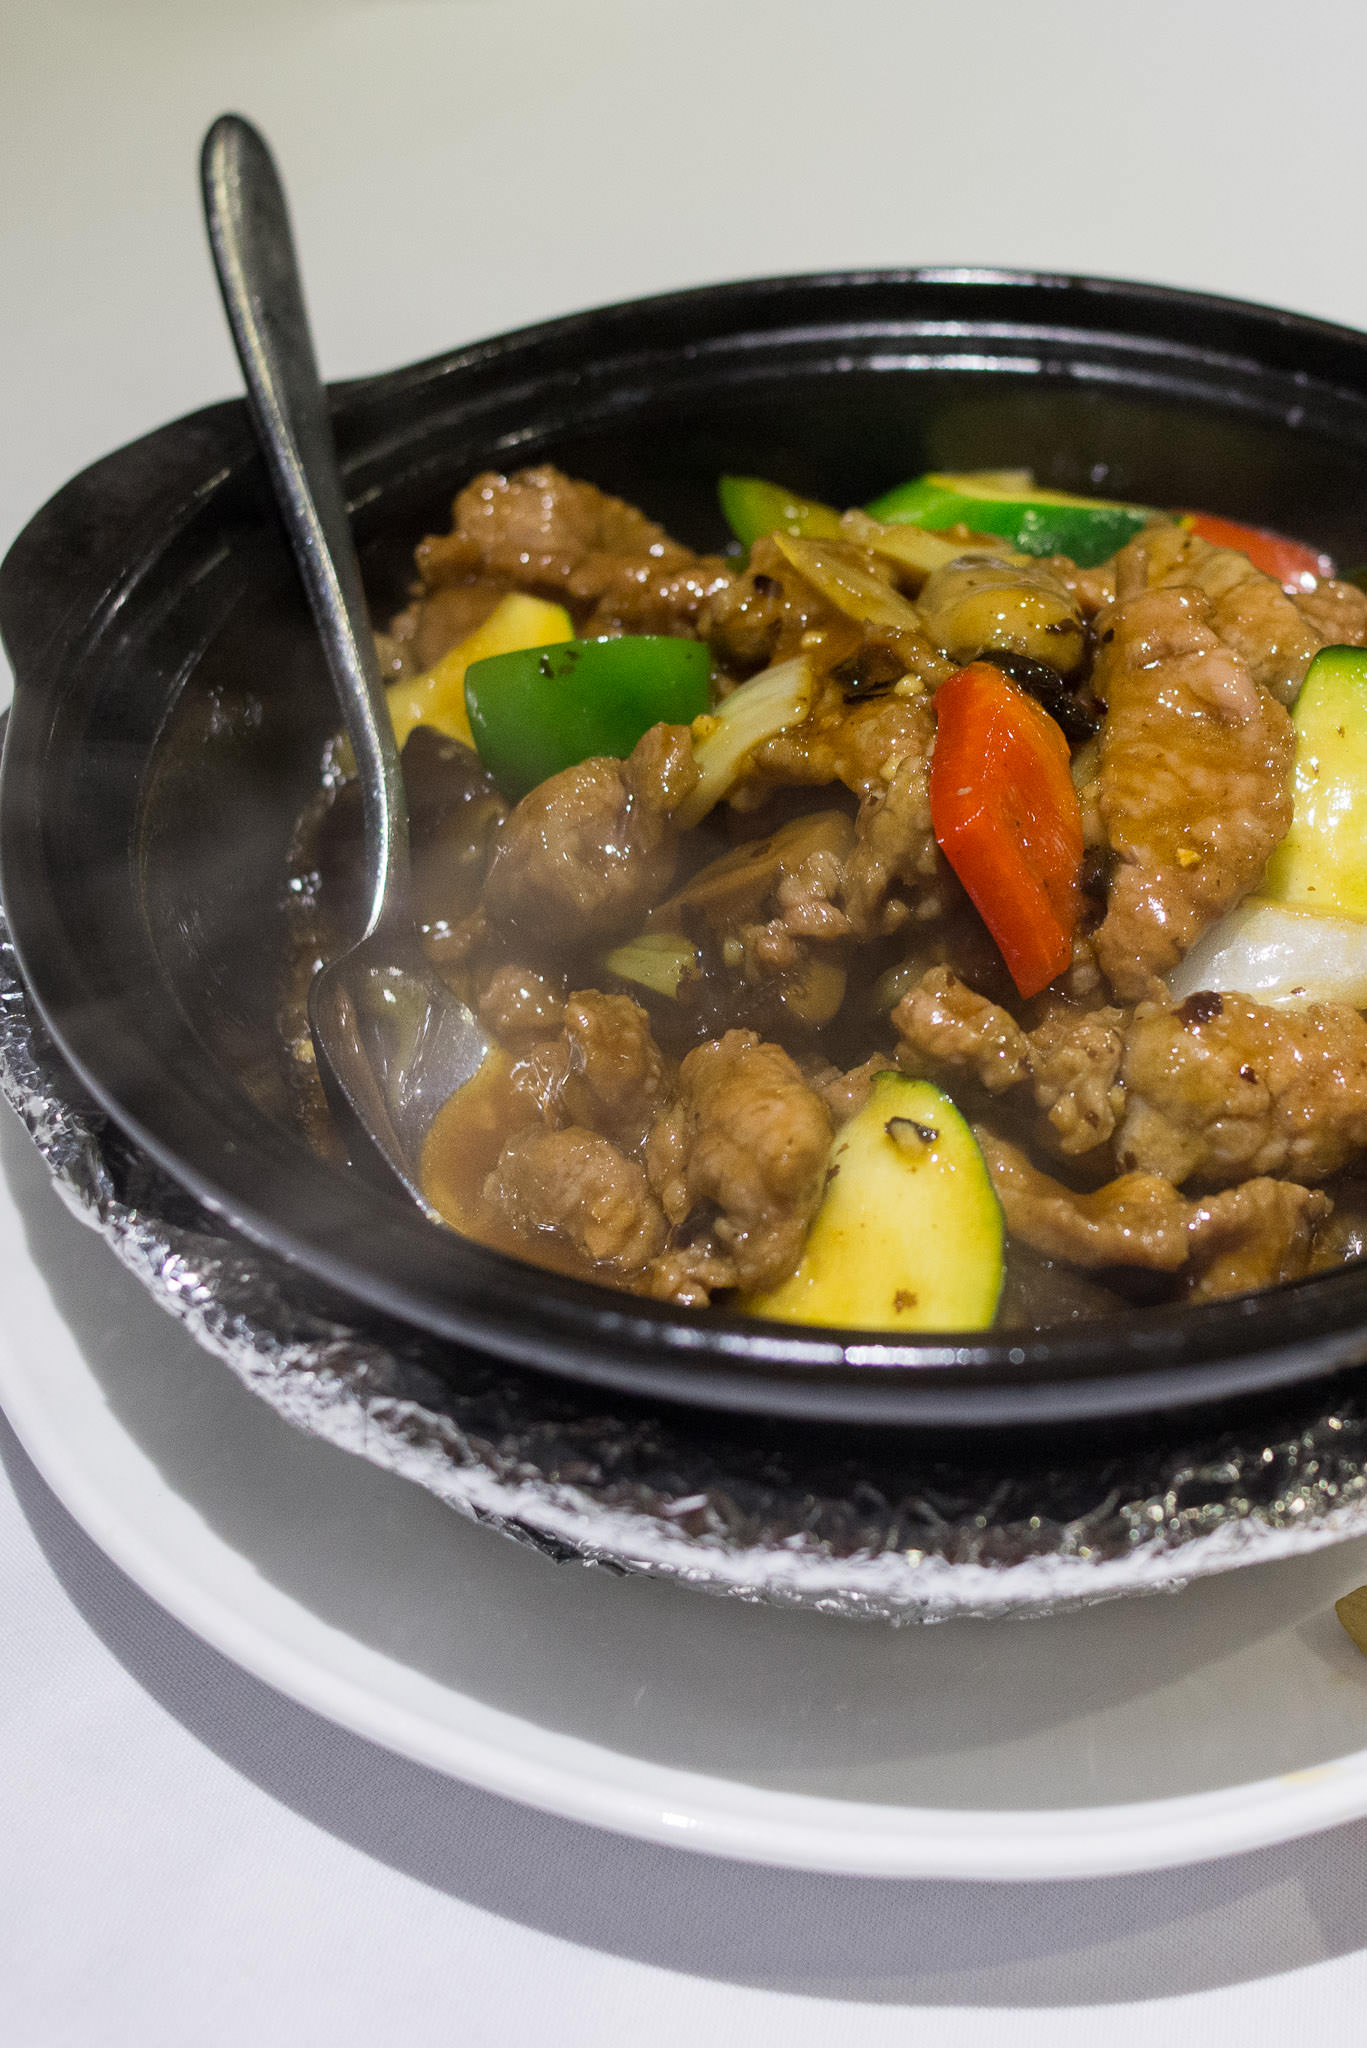 Braised beef fillets with zucchini, broccoli, mushrooms and onions in black bean sauce served in claypot (AU$22.80)